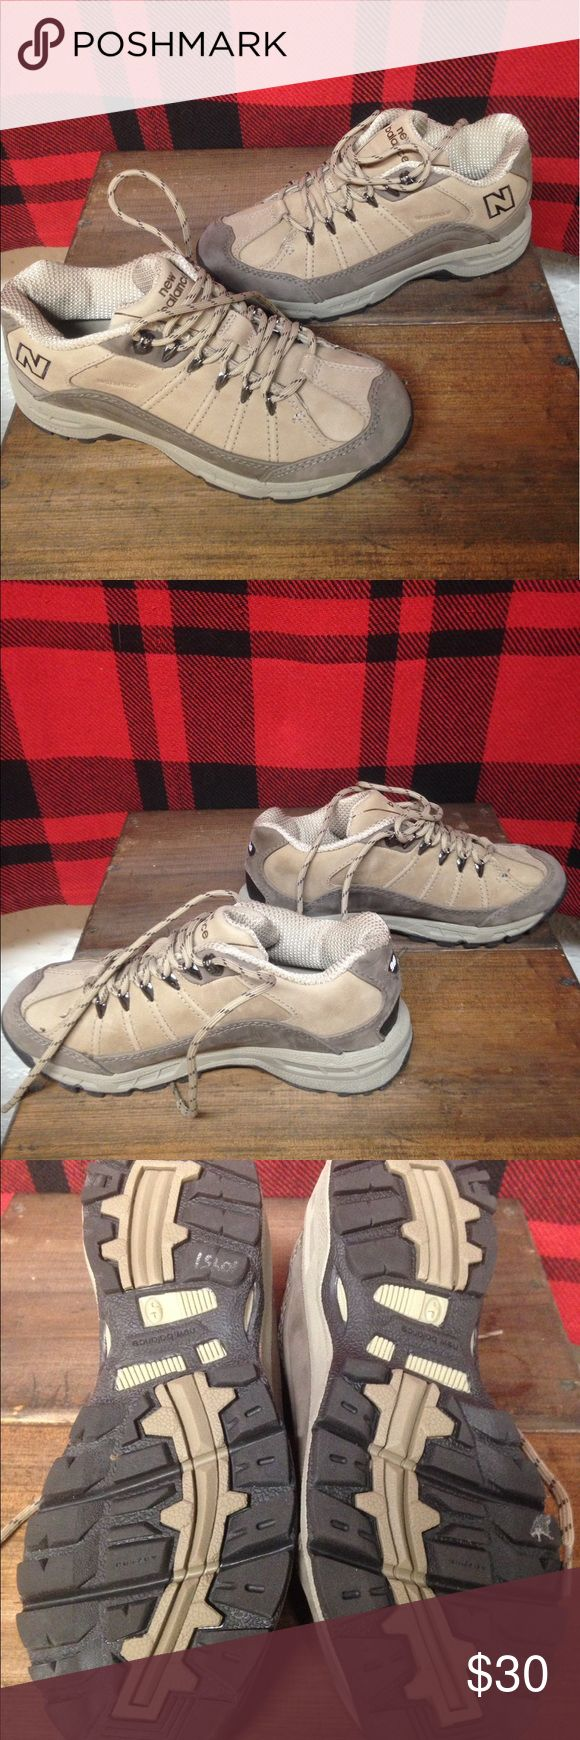 Euc new balance 966 hiking shoes sz 6 Excellent used condition New balance 966 hiking shoes wore once nice condition tan and brown sz 6 waterproof New Balance Shoes Athletic Shoes